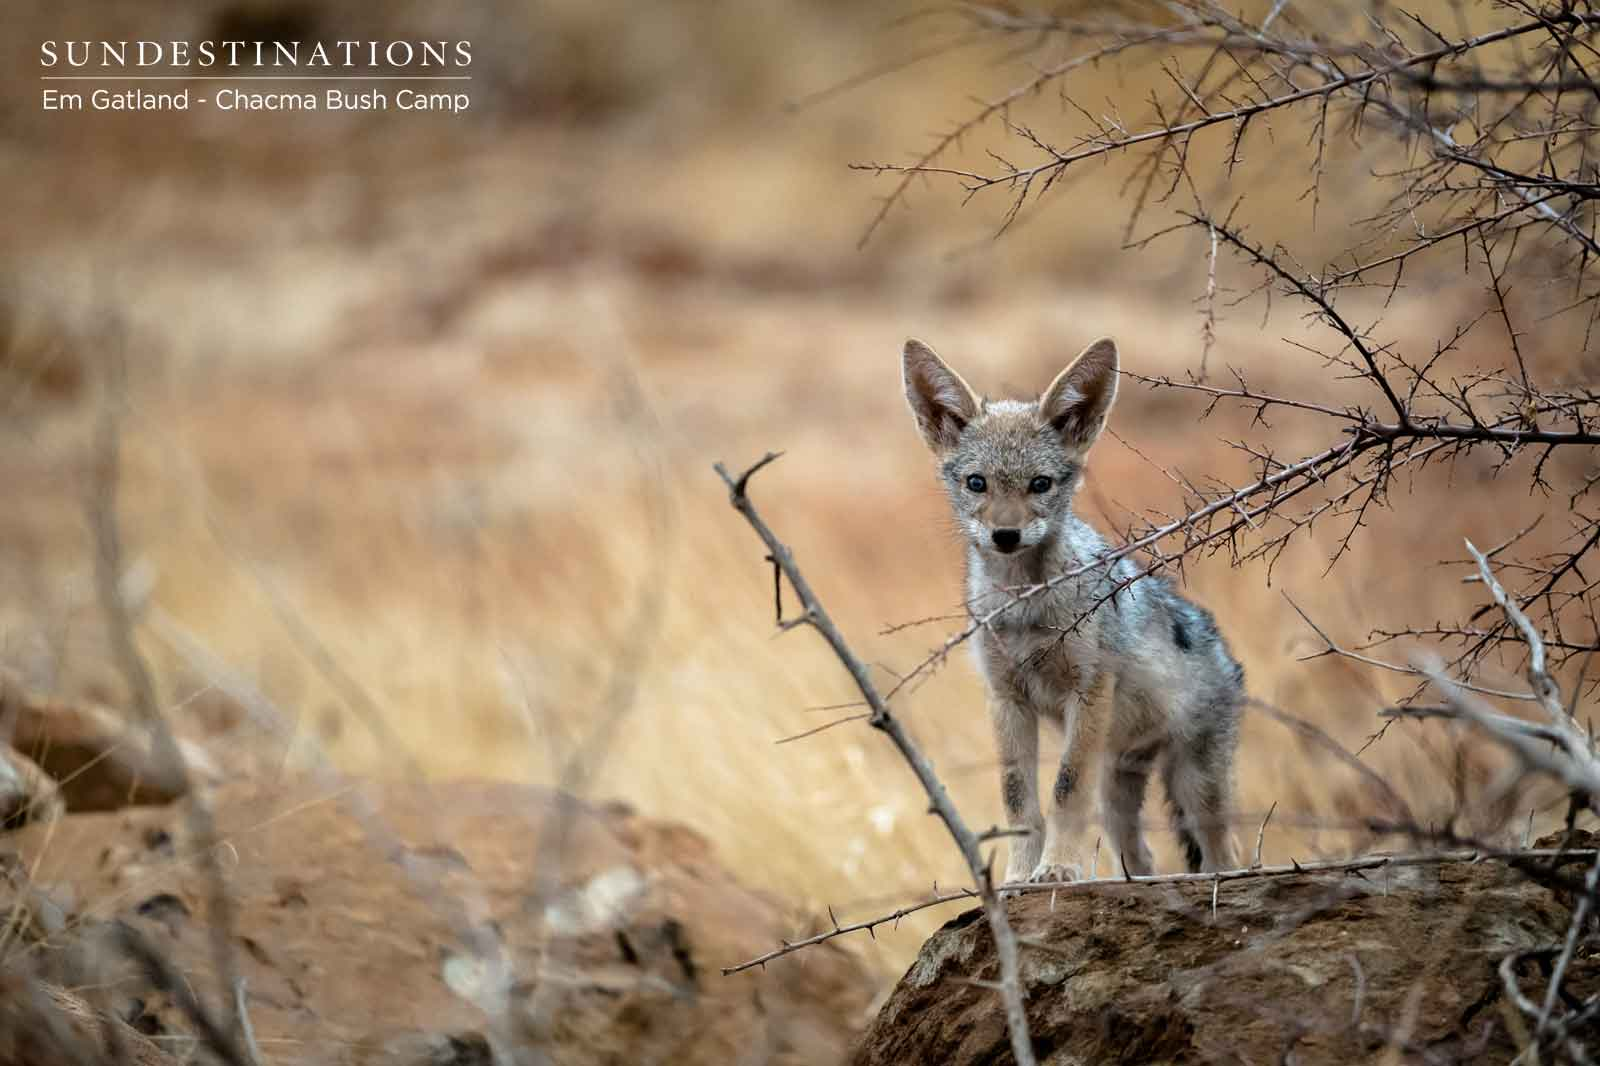 Jackals of Chacma